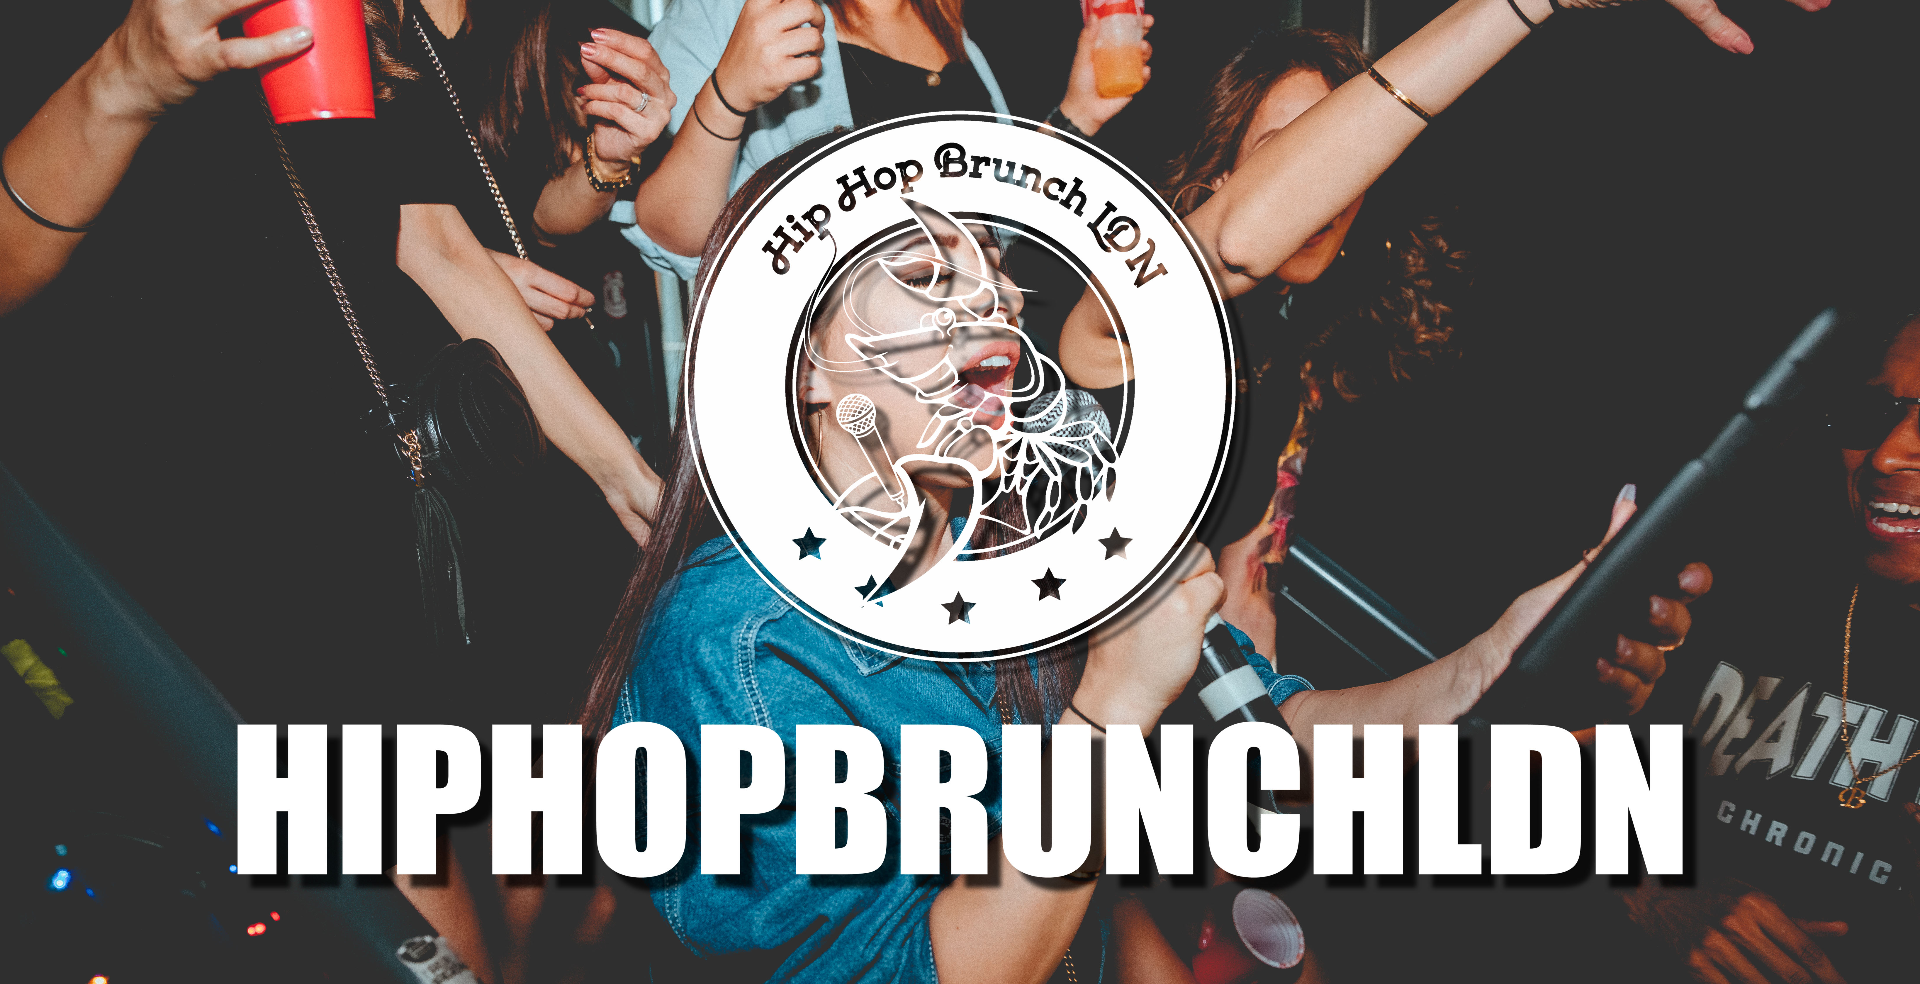 Hip Hop Brunch: March 6th